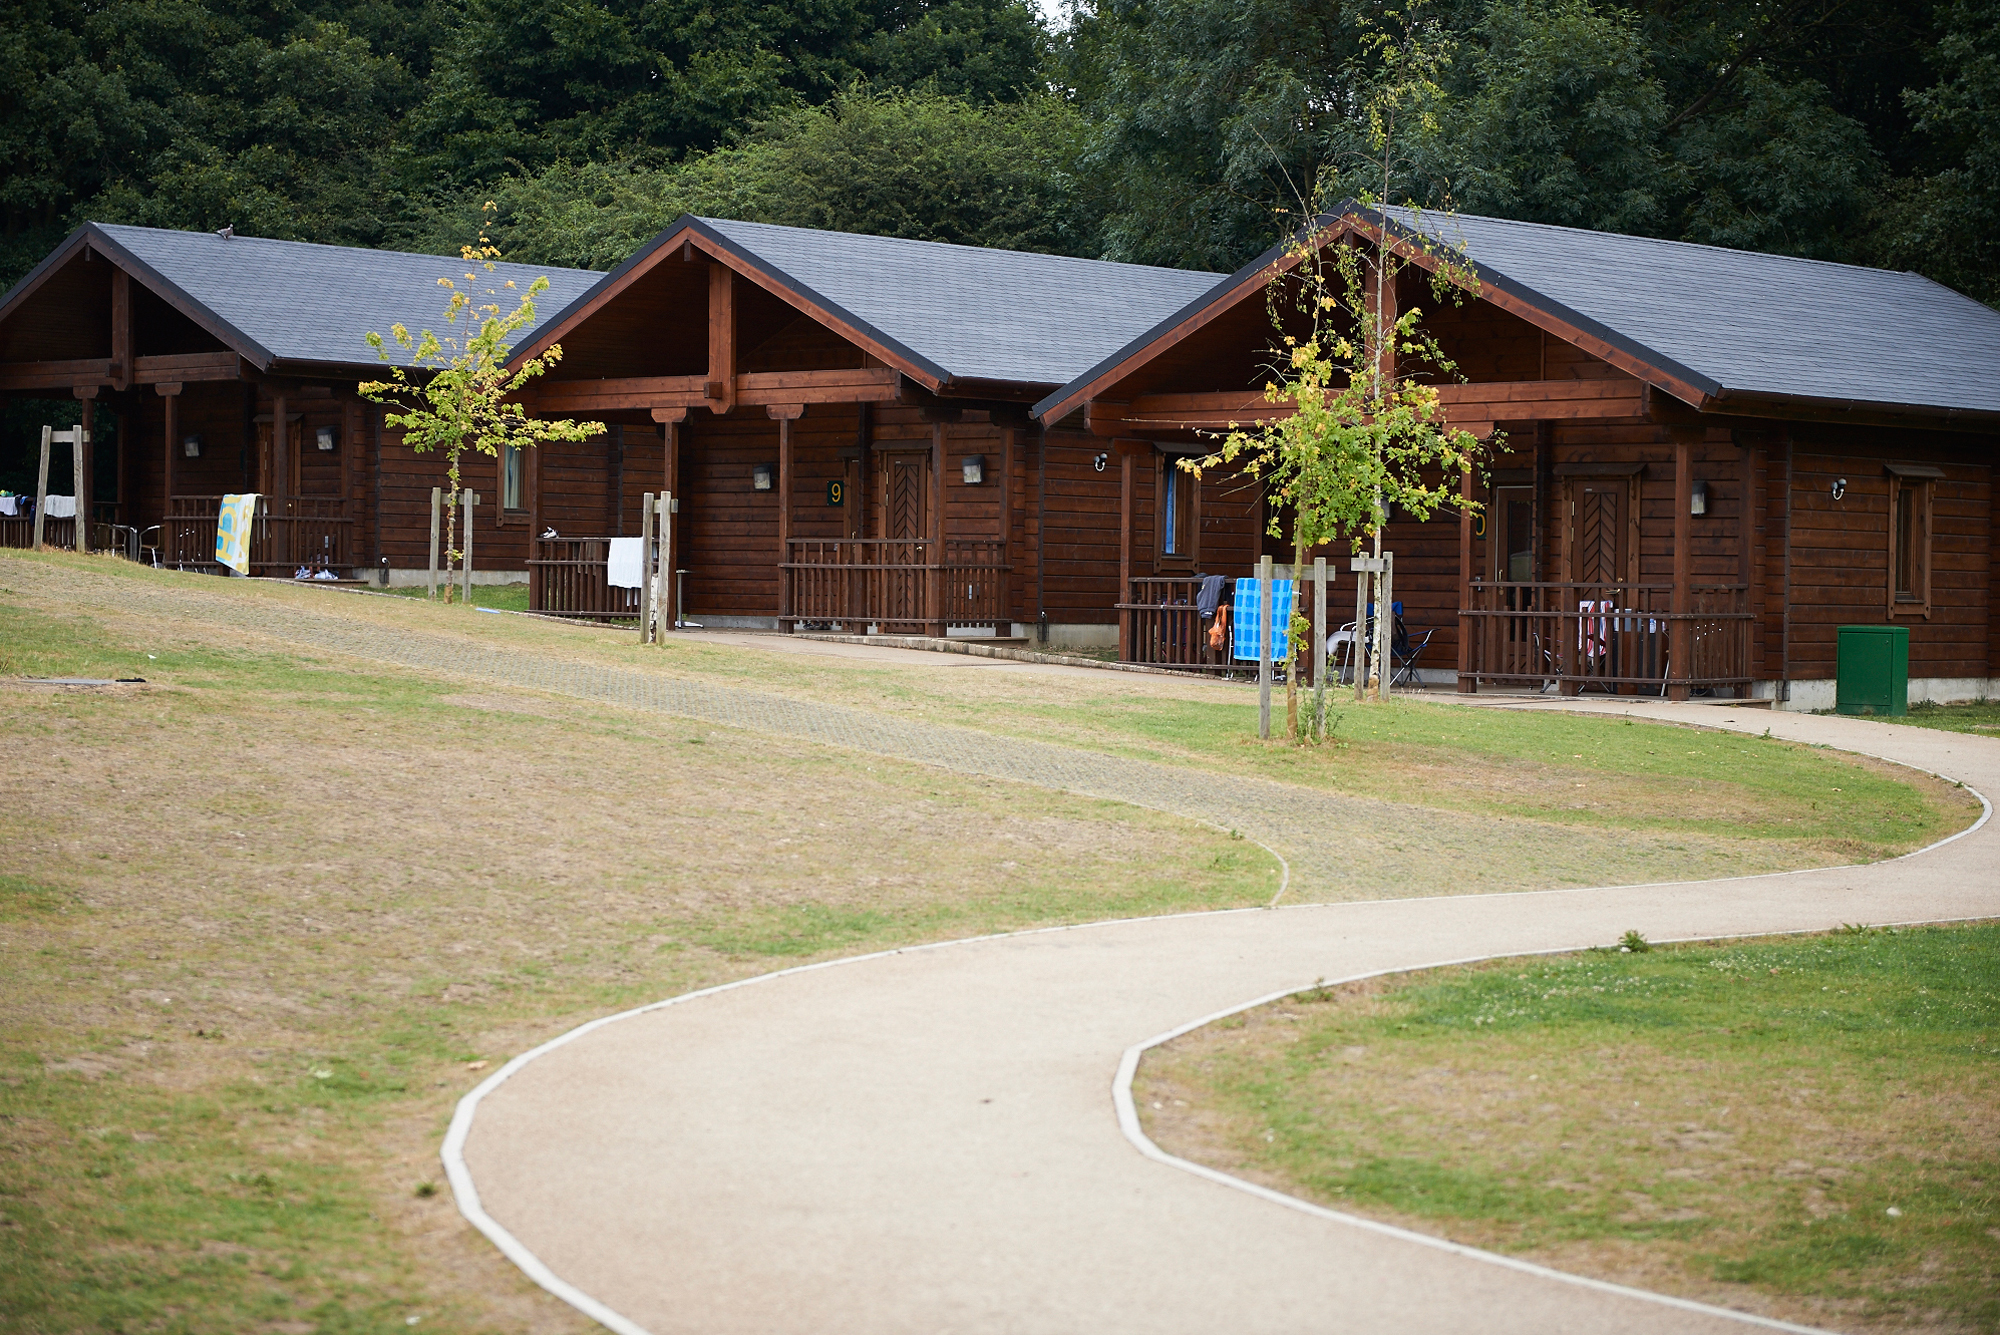 GREAT OUTDOORS: Danbury Outdoor Centre could get 11 new cabins, bringing in more visitorsPicture: Danbury Outdoor Centre